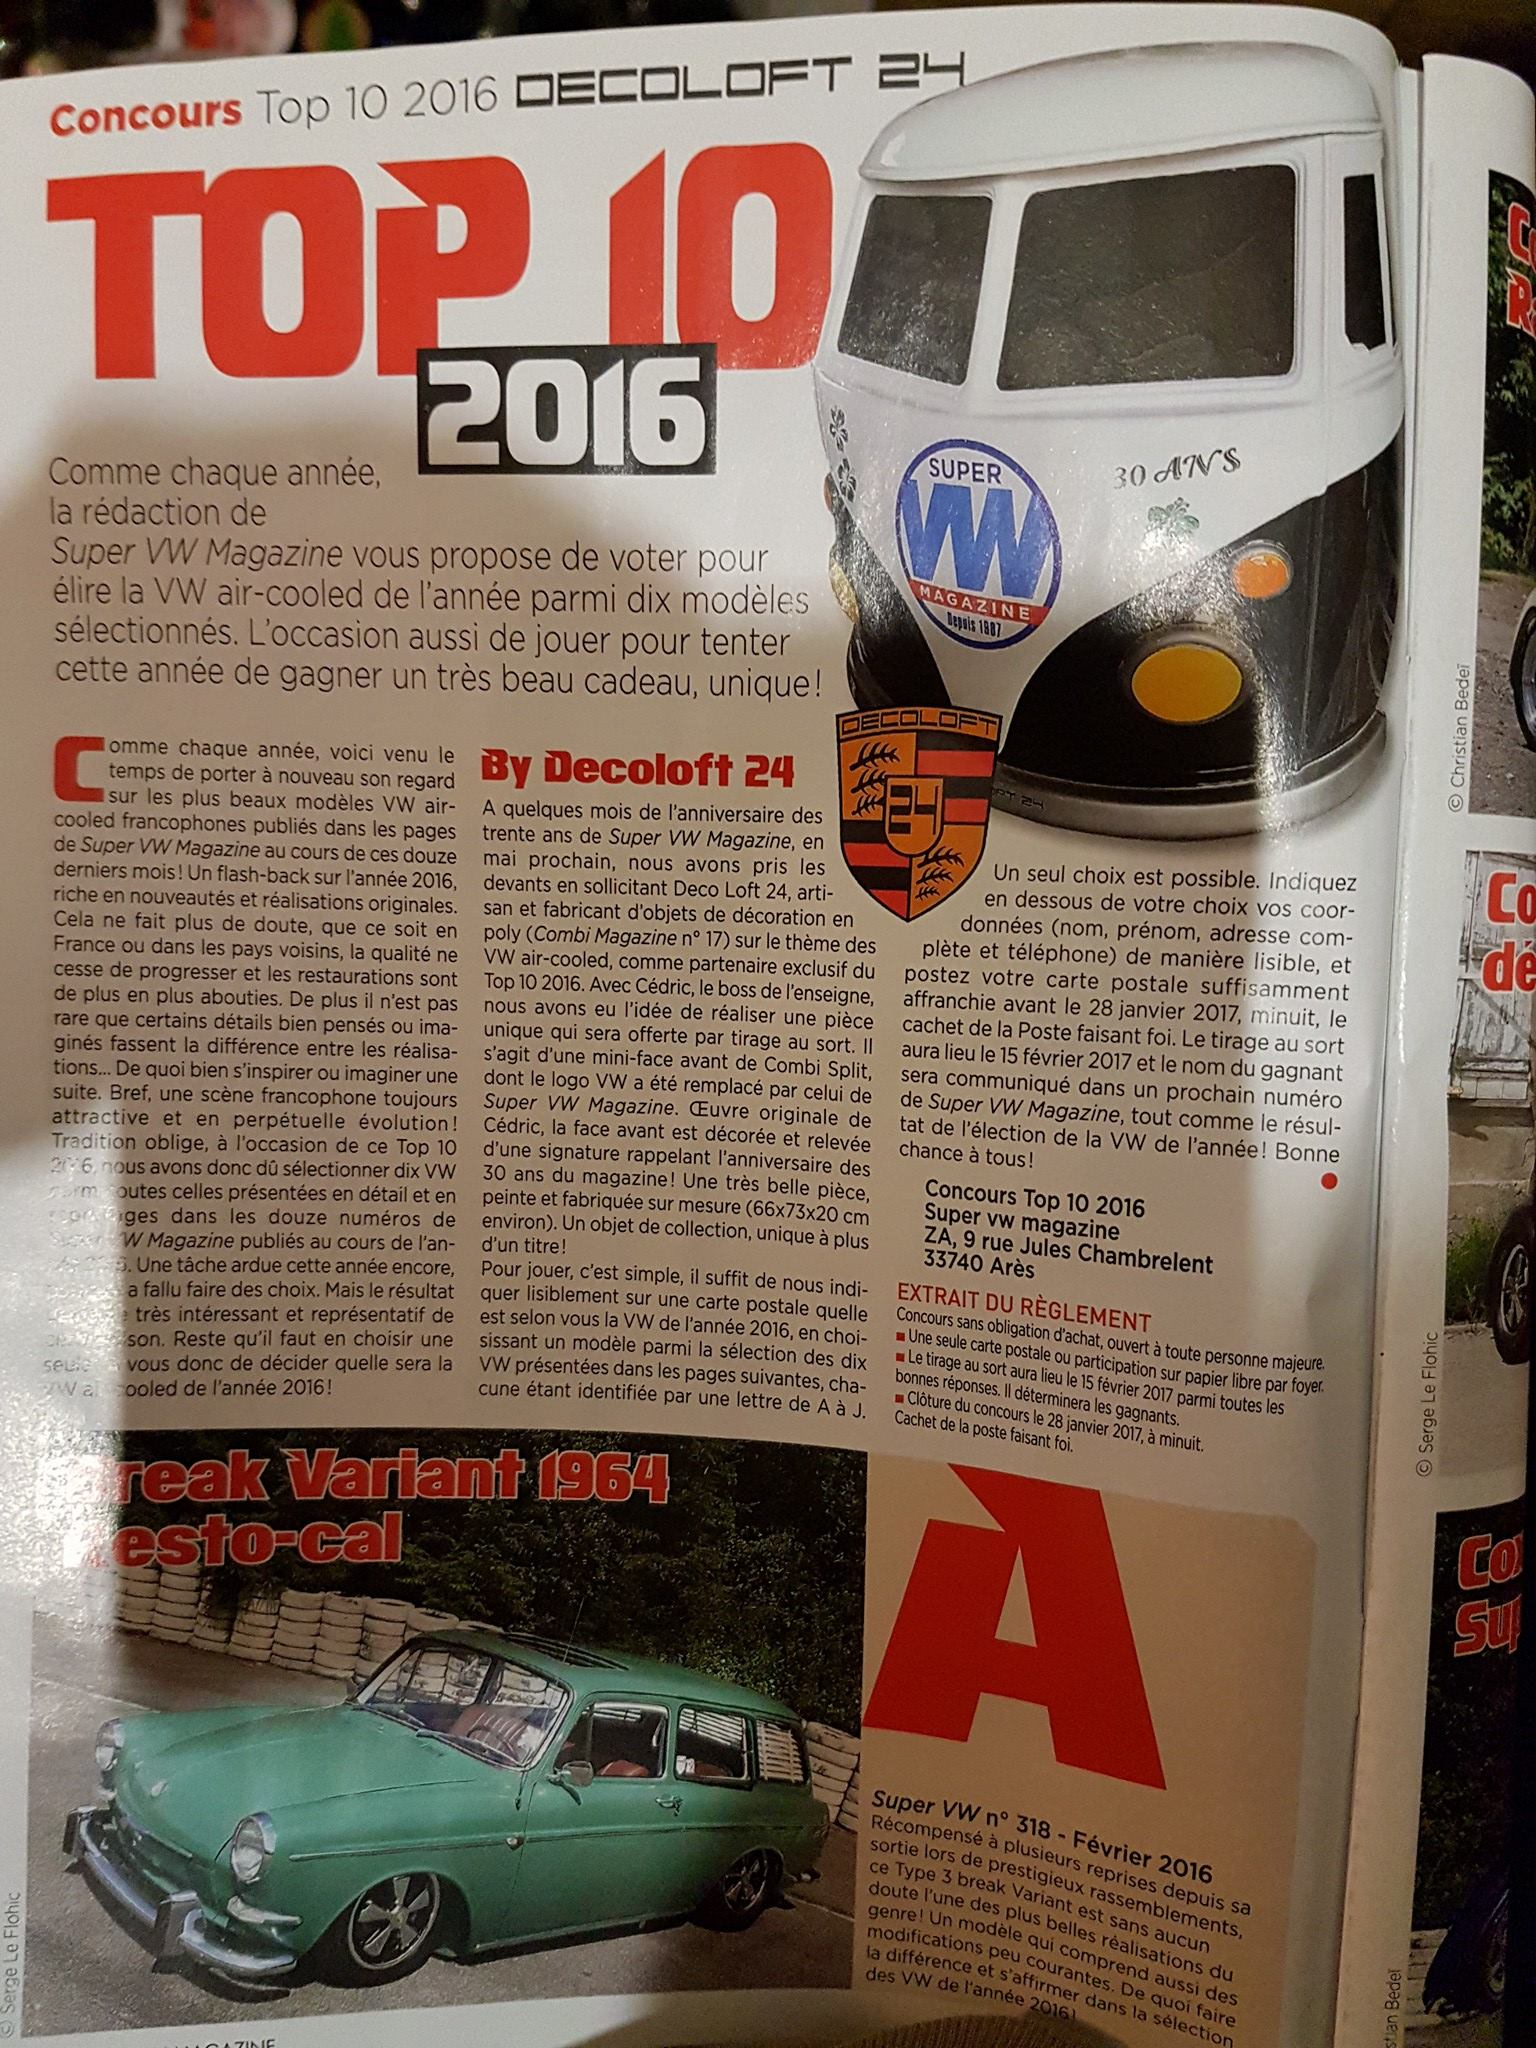 Decoloft 24 dans le Super VW magazine